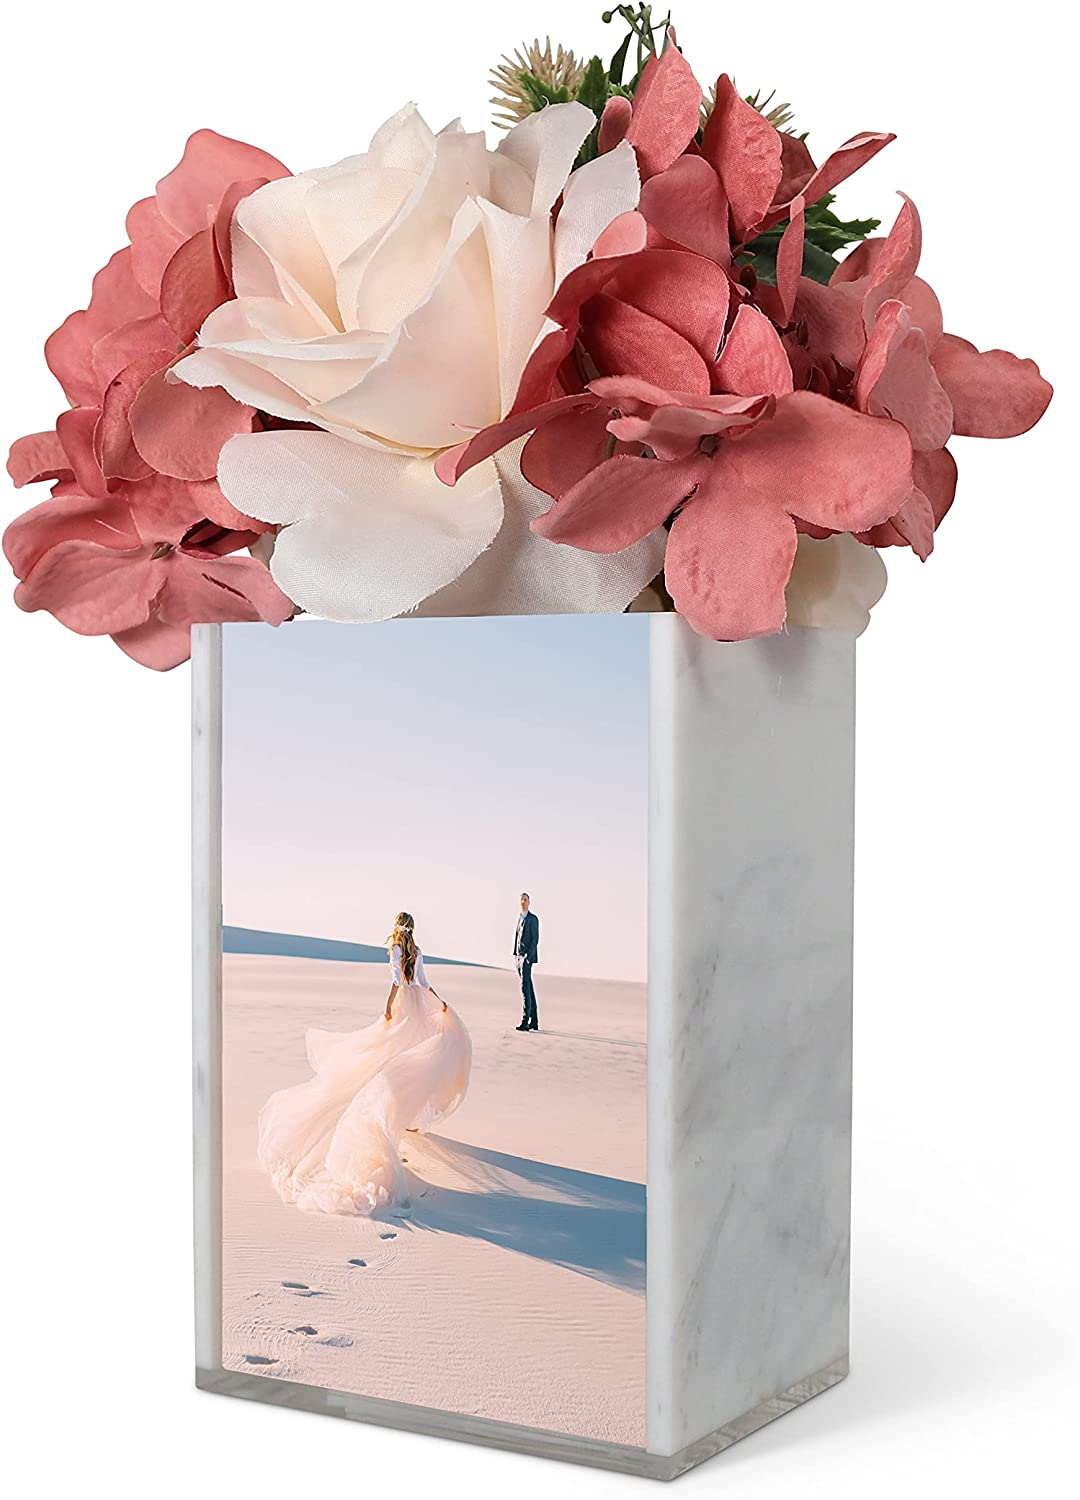 Daily bargain sale La Valage Vase Picture Bargain Frame Double Room Photo Decor Home Sided